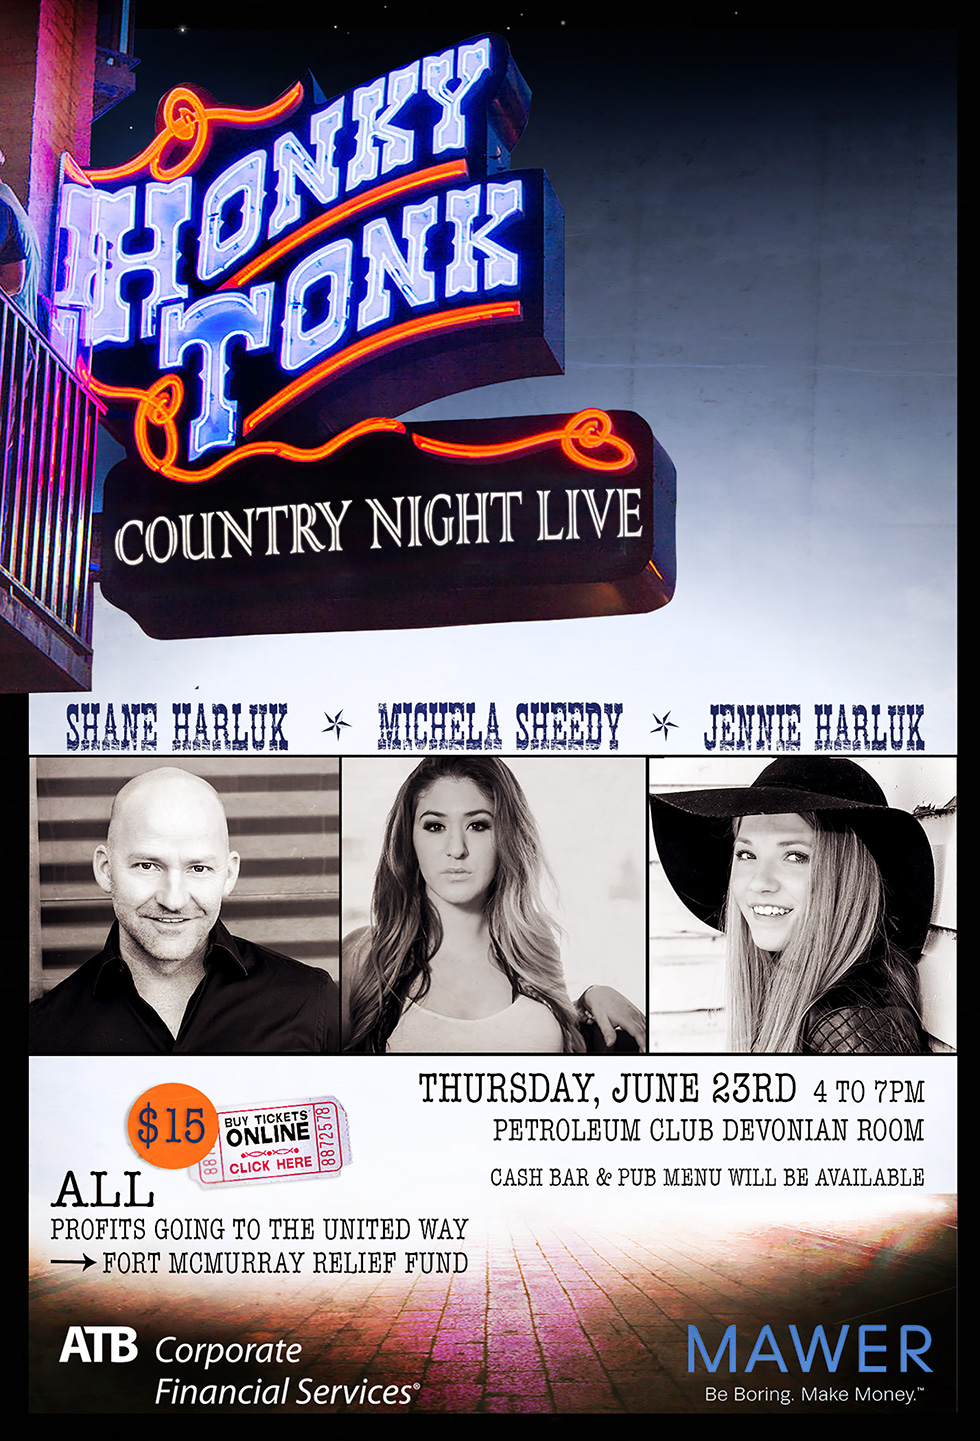 Honky Tonk Country Night Live